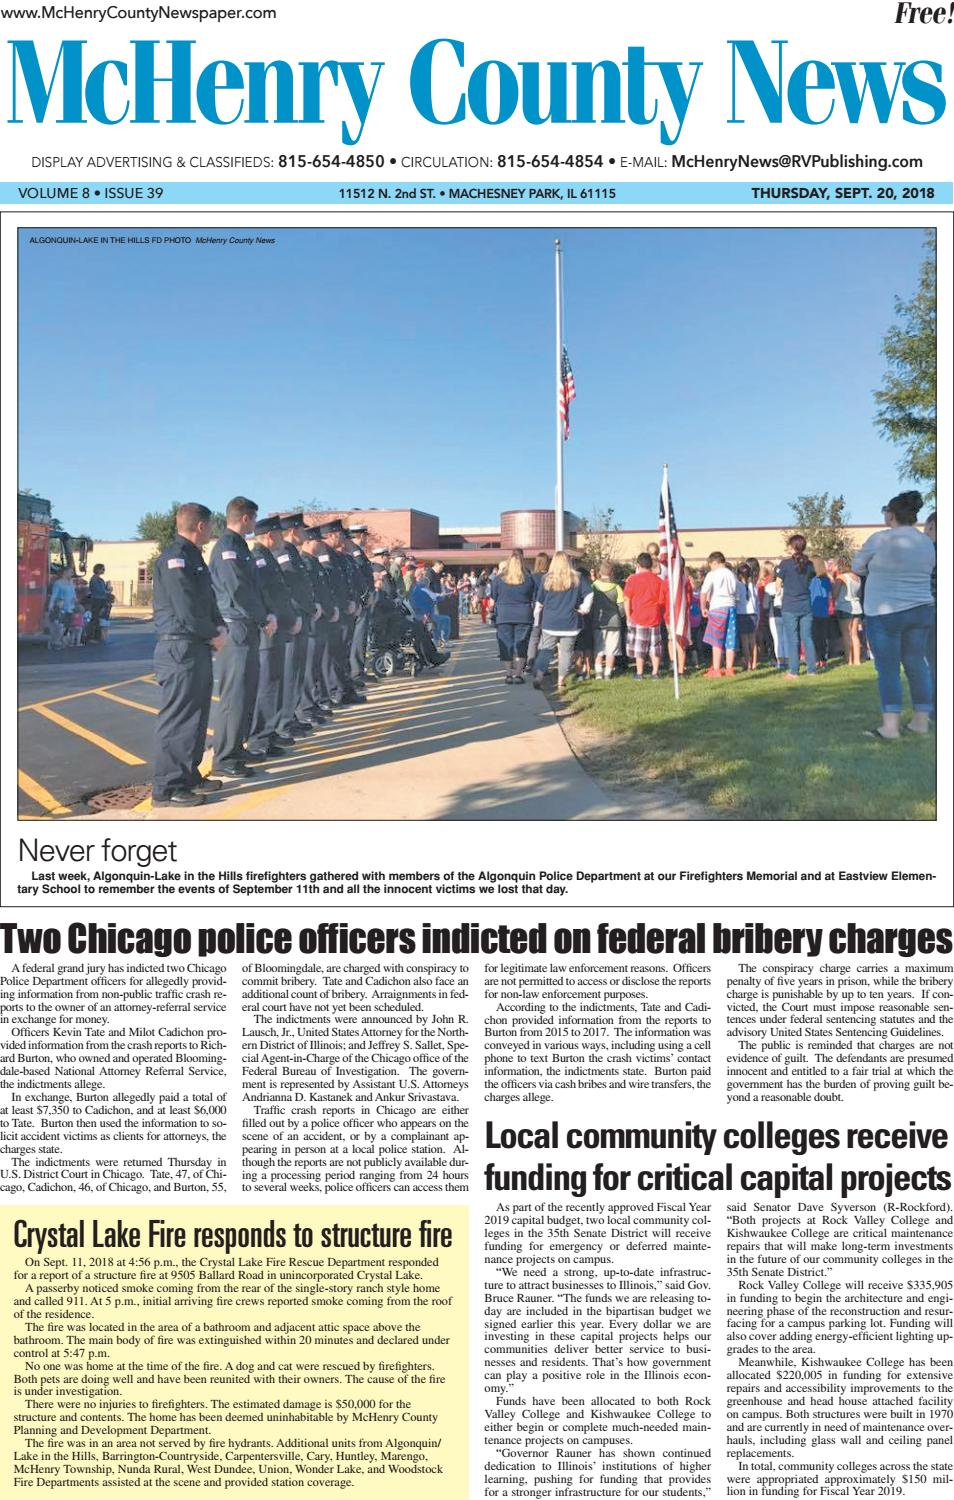 MC92018 by Southern Lakes Newspapers / Rock Valley